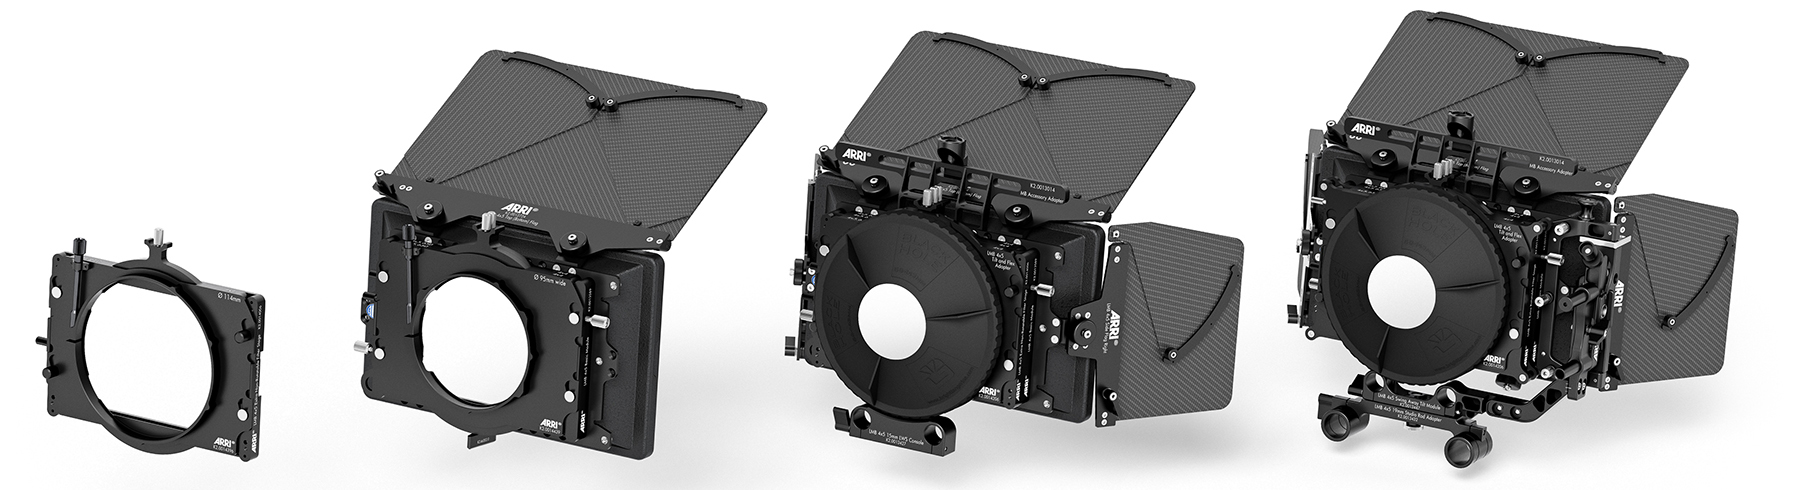 Lmb 4X5 Configurations Featured